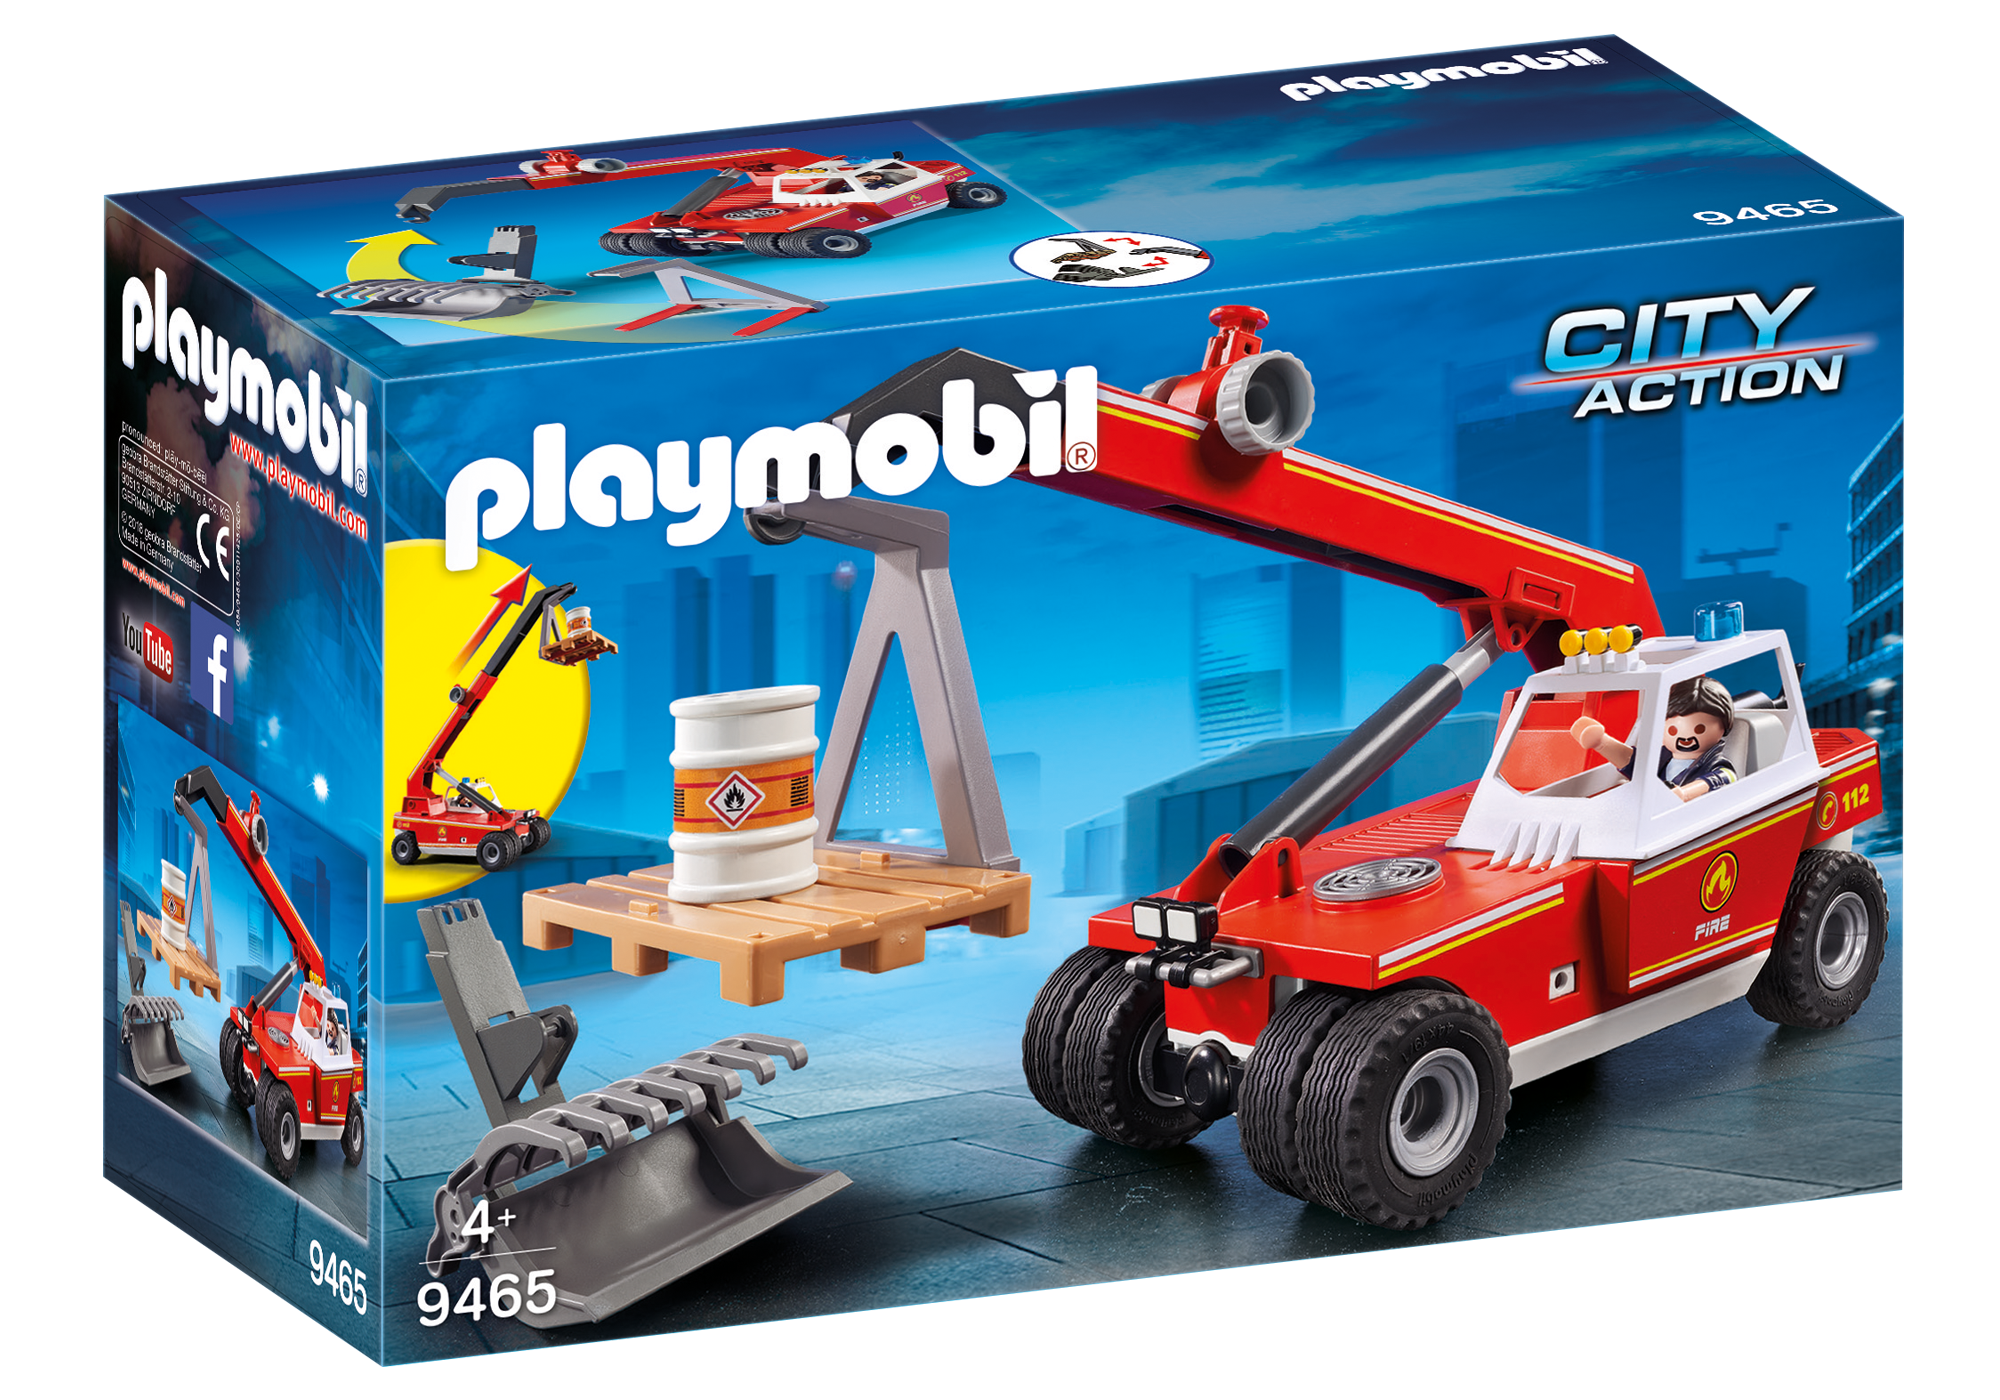 http://media.playmobil.com/i/playmobil/9465_product_box_front/Feuerwehr-Teleskoplader